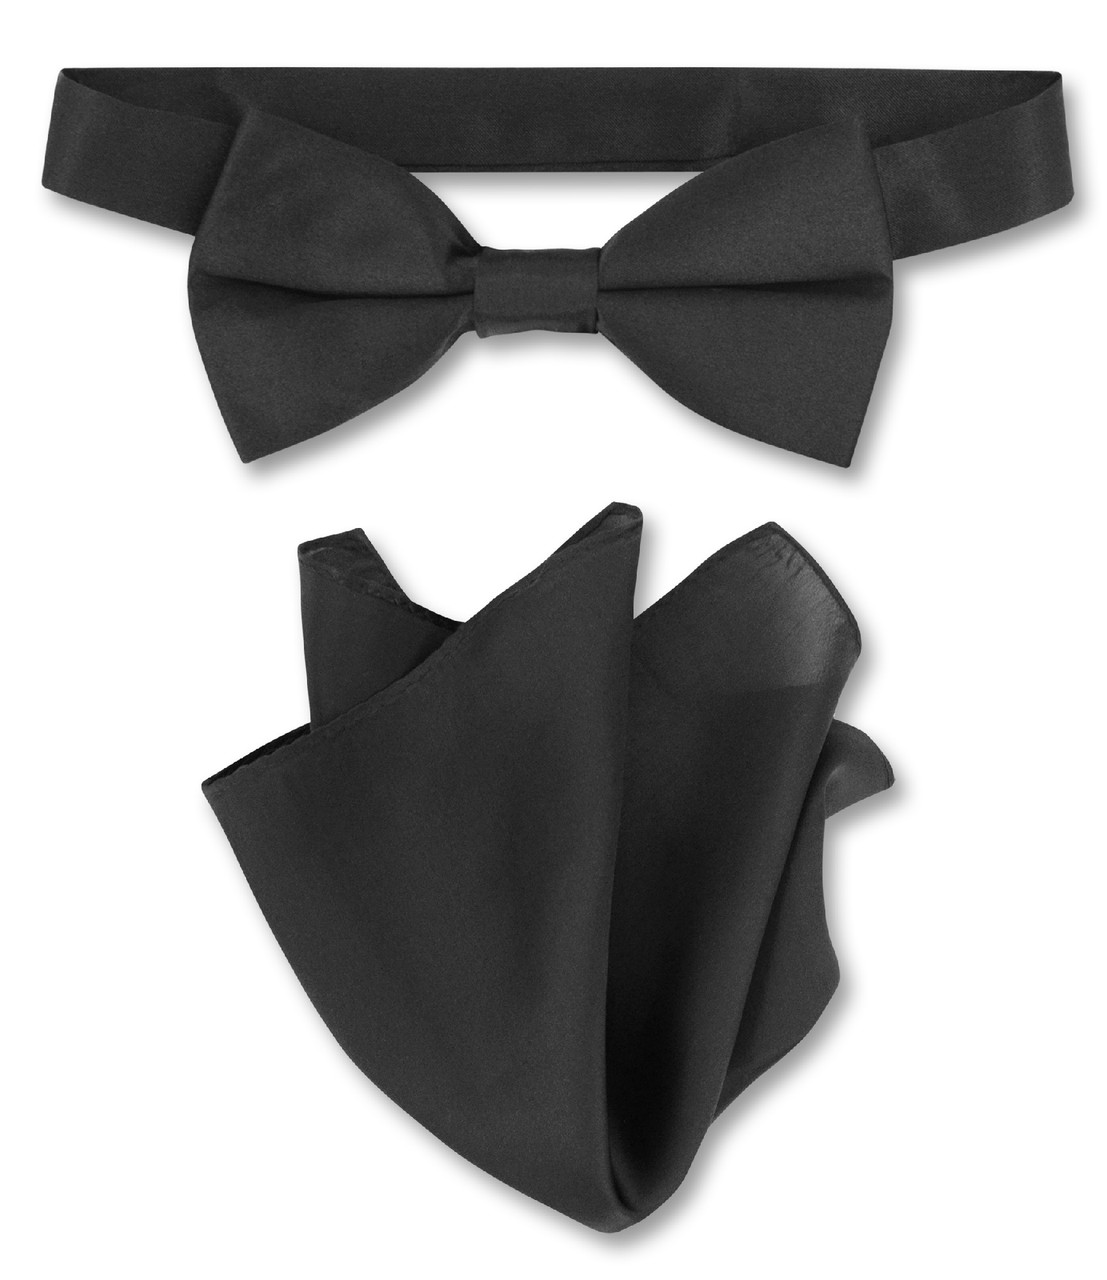 ba3a9be6f0bd Black Bow Tie And Handkerchief Set | Mens Silk BowTie Hanky Set